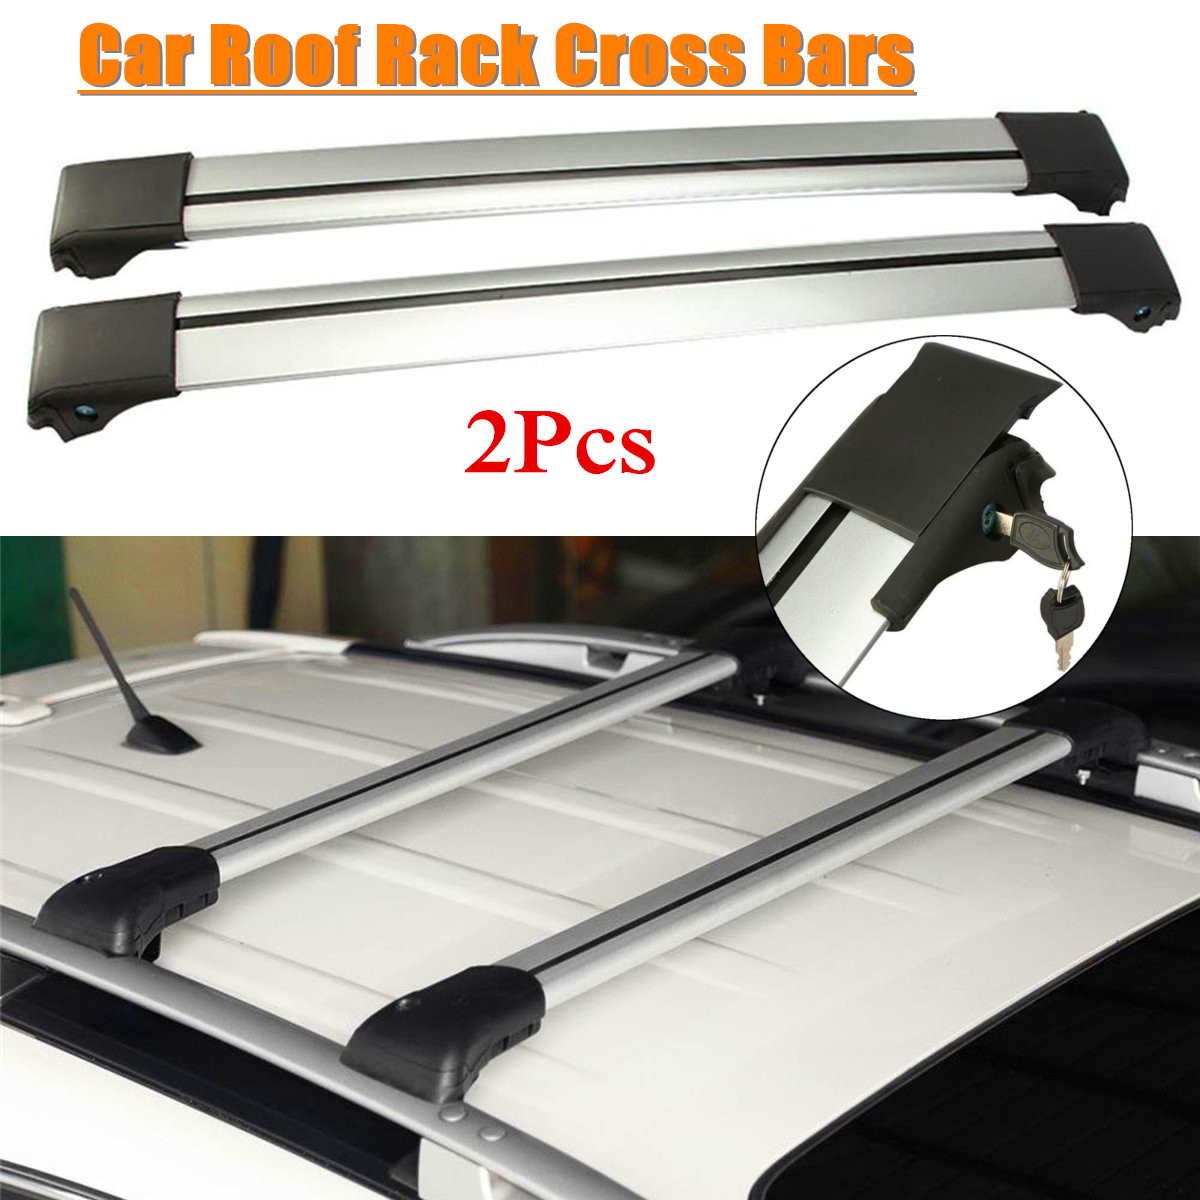 2Pcs Universal Car Roof Rack Cross Bar Luggage Carrier For Raised Rail 93 99mm|Roof Racks & Boxes| |  - title=